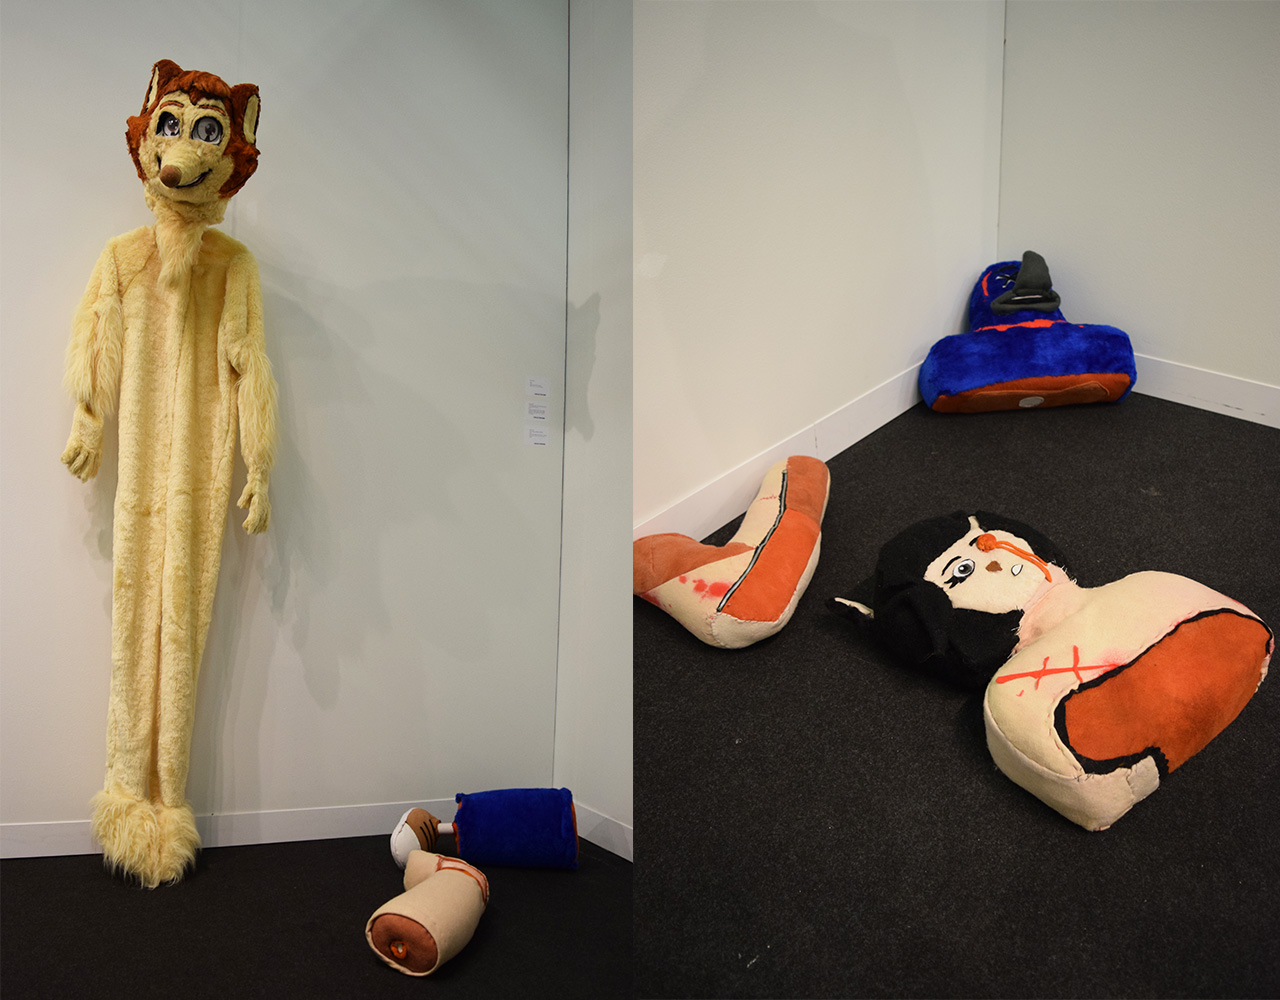 """Ed Fornieles's """"Furry"""" (2016, far left) and """"Virtual Insanity, Cosmic Girl, Ballad of Big Nothing, A Fond Farewell, It's My Life"""" (2015) in the Carlos/Ishikawa booth at the 2016 Armory Show"""